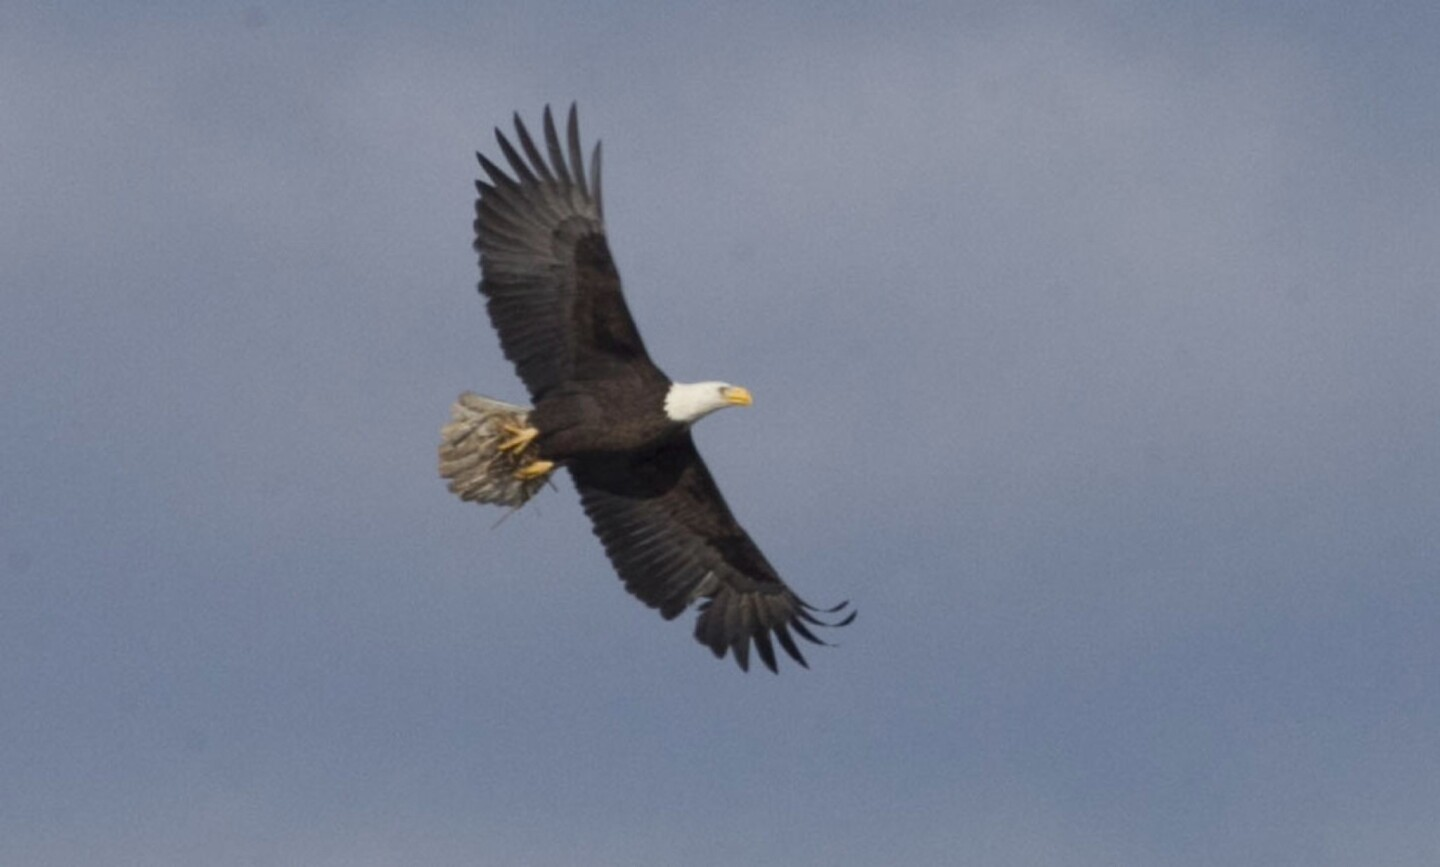 A bald eagle flew overhead with nesting materials it gathered from the dried grasses along the shore of Lake Cuyamaca.